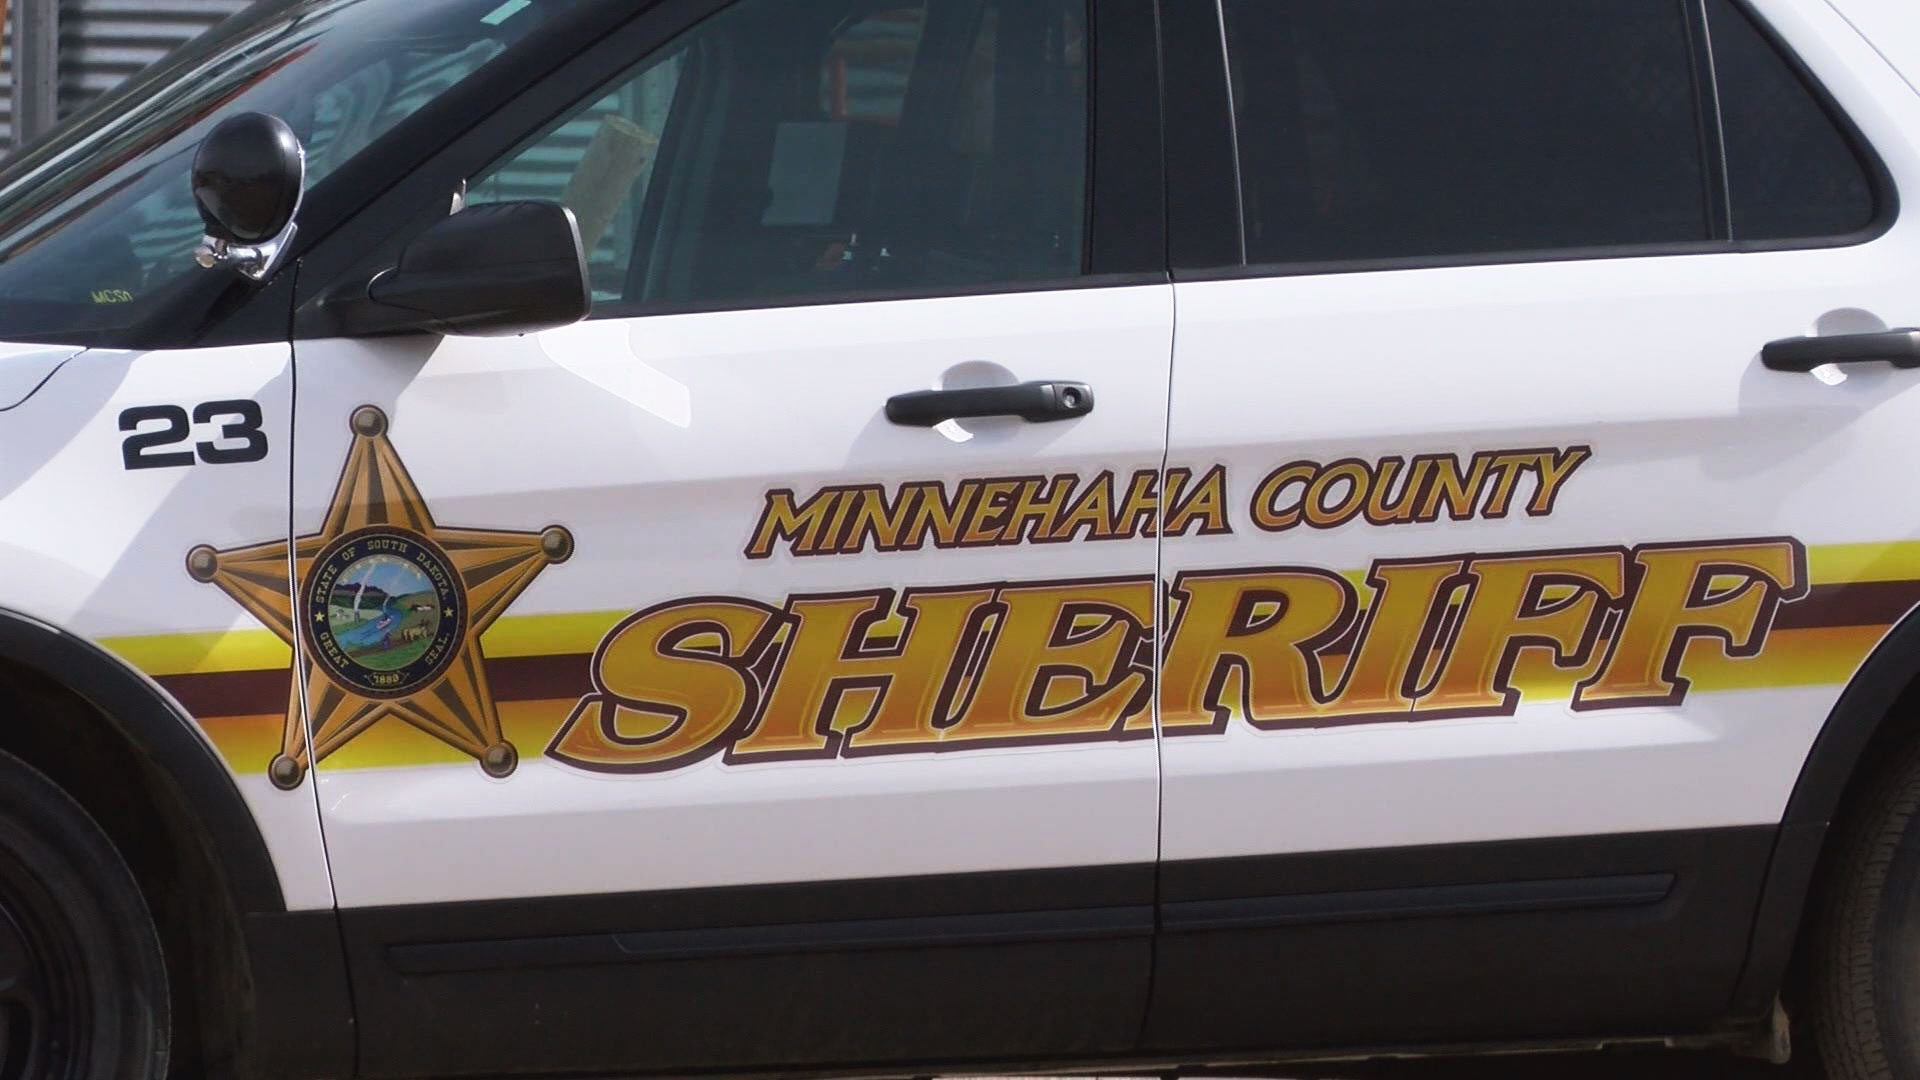 KELO Minnehaha County Sheriff